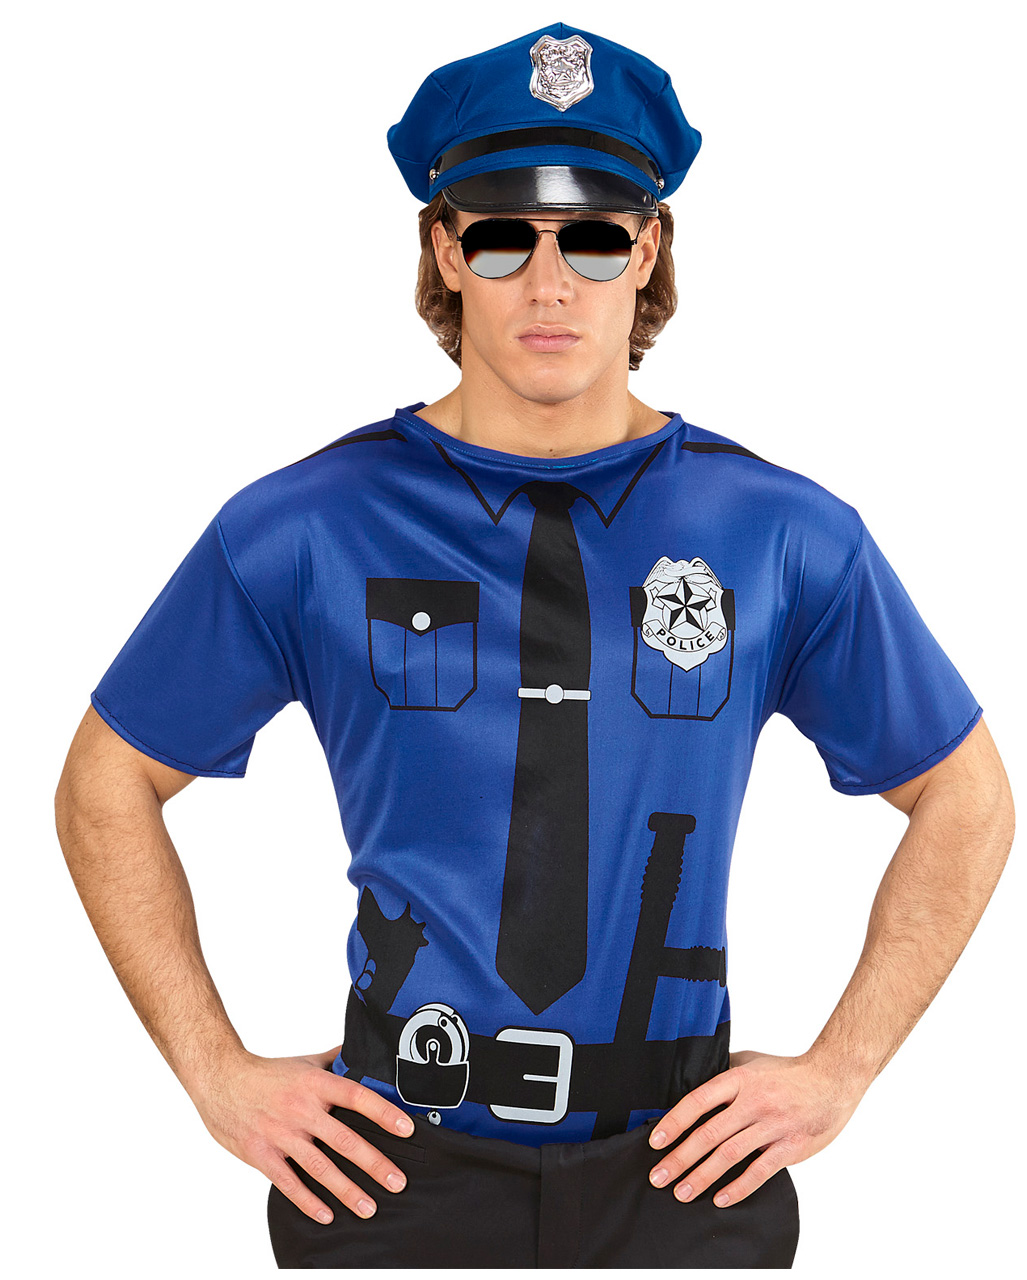 us policeman t-shirt as a cop costume accessory | horror-shop